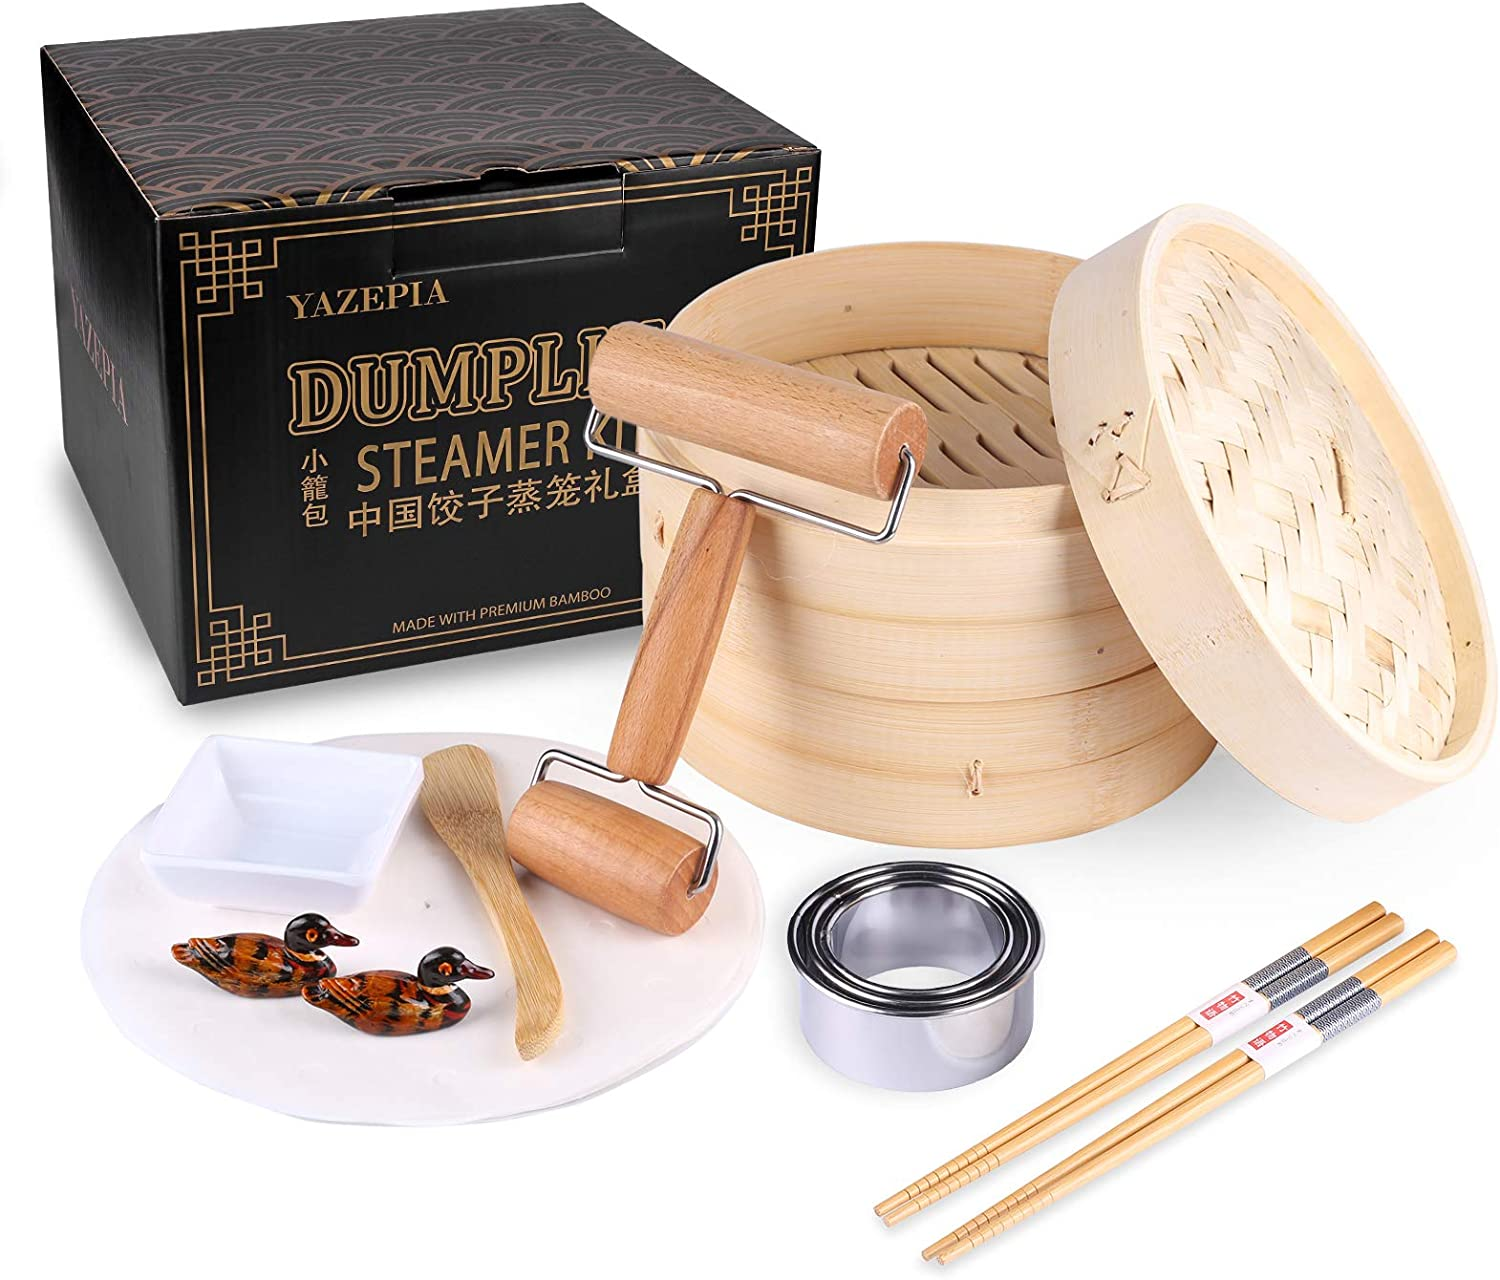 Yazepia Bamboo Steamer Basket Kit, Dumpling Maker Cookware Mold Sets, Natural Bamboo Handmade cookware Mold Sets, Healthy Food Steamer, 8 Piece Chinese Soup Dumpling Kit Unique Gifts for Friends